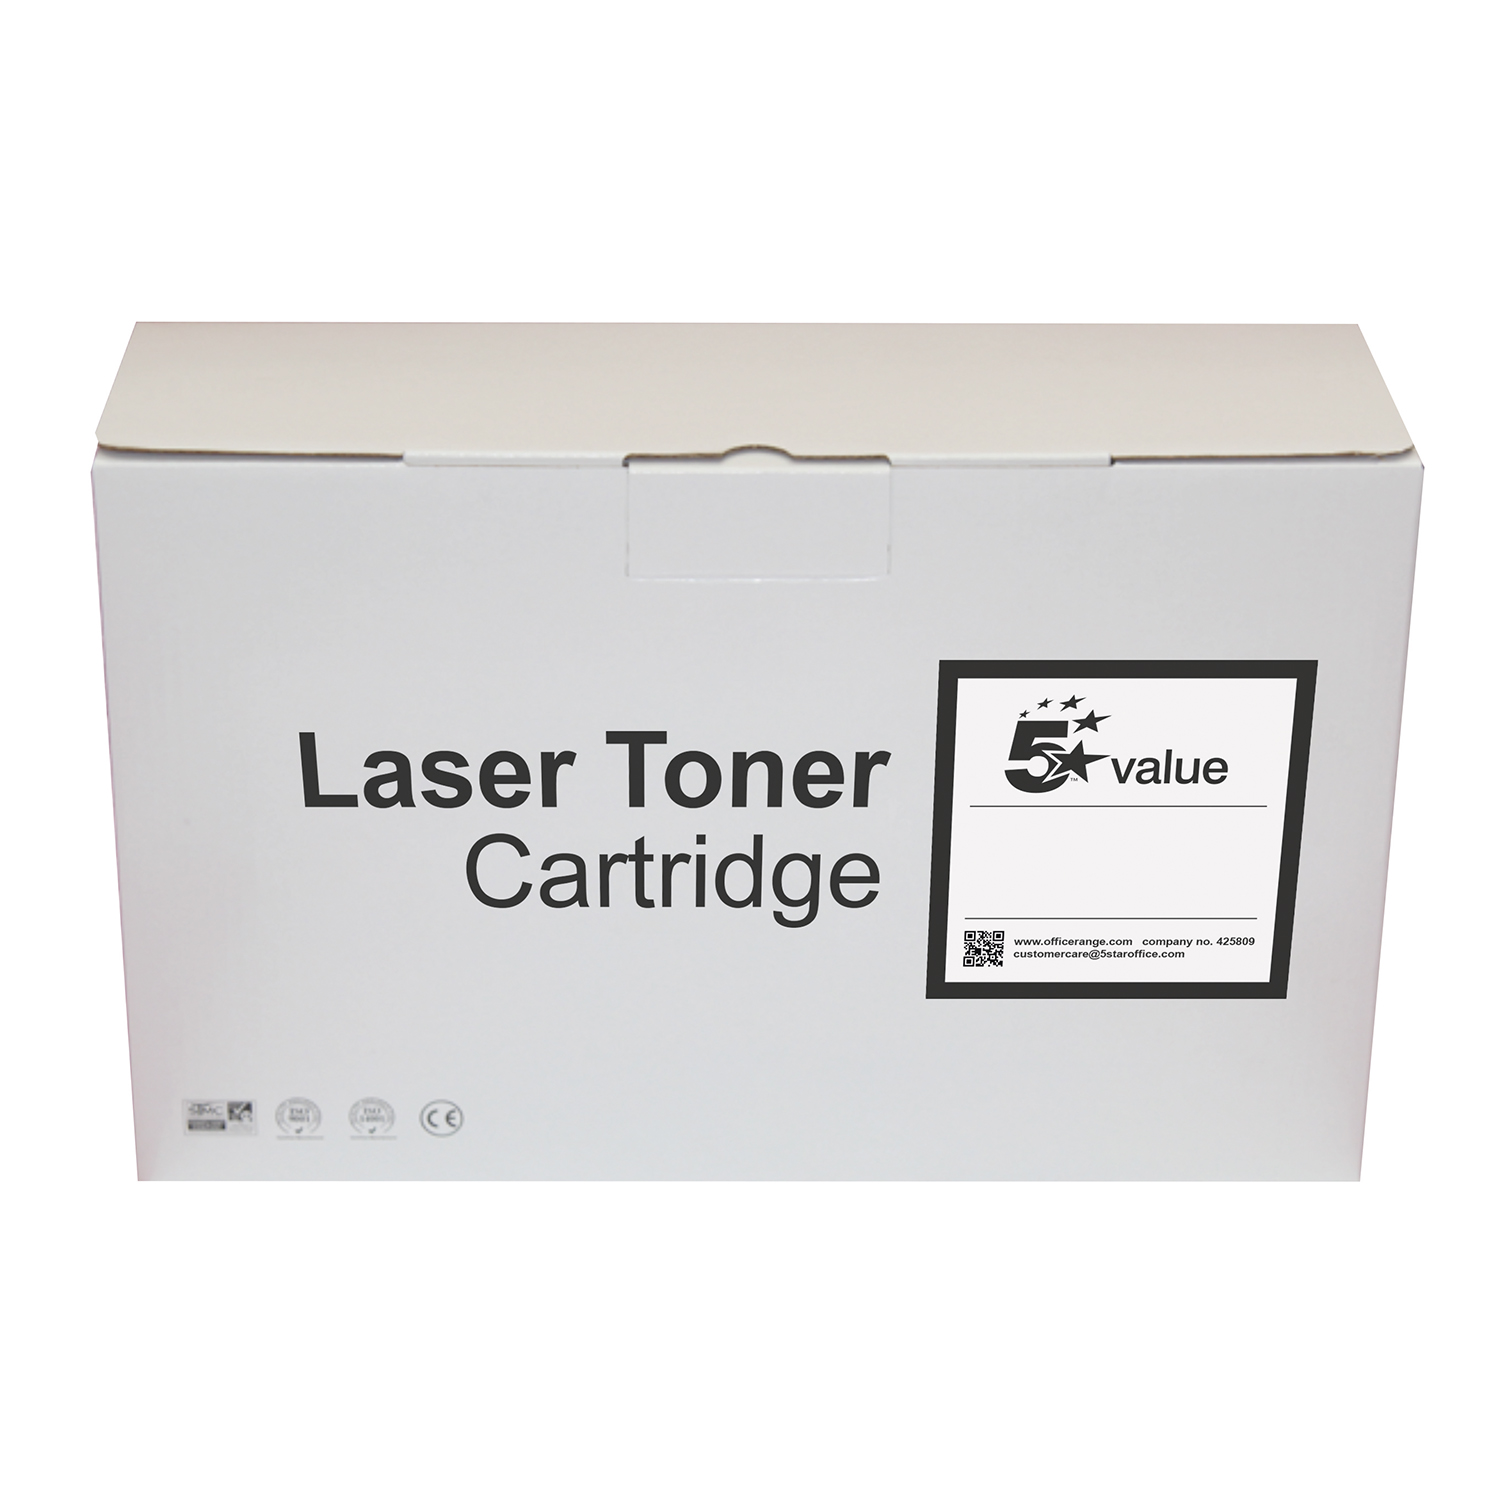 5 Star Value Remanufactured Laser Toner Cartridge Page Life 6000pp Black HP No. 55A CE255A Alternative